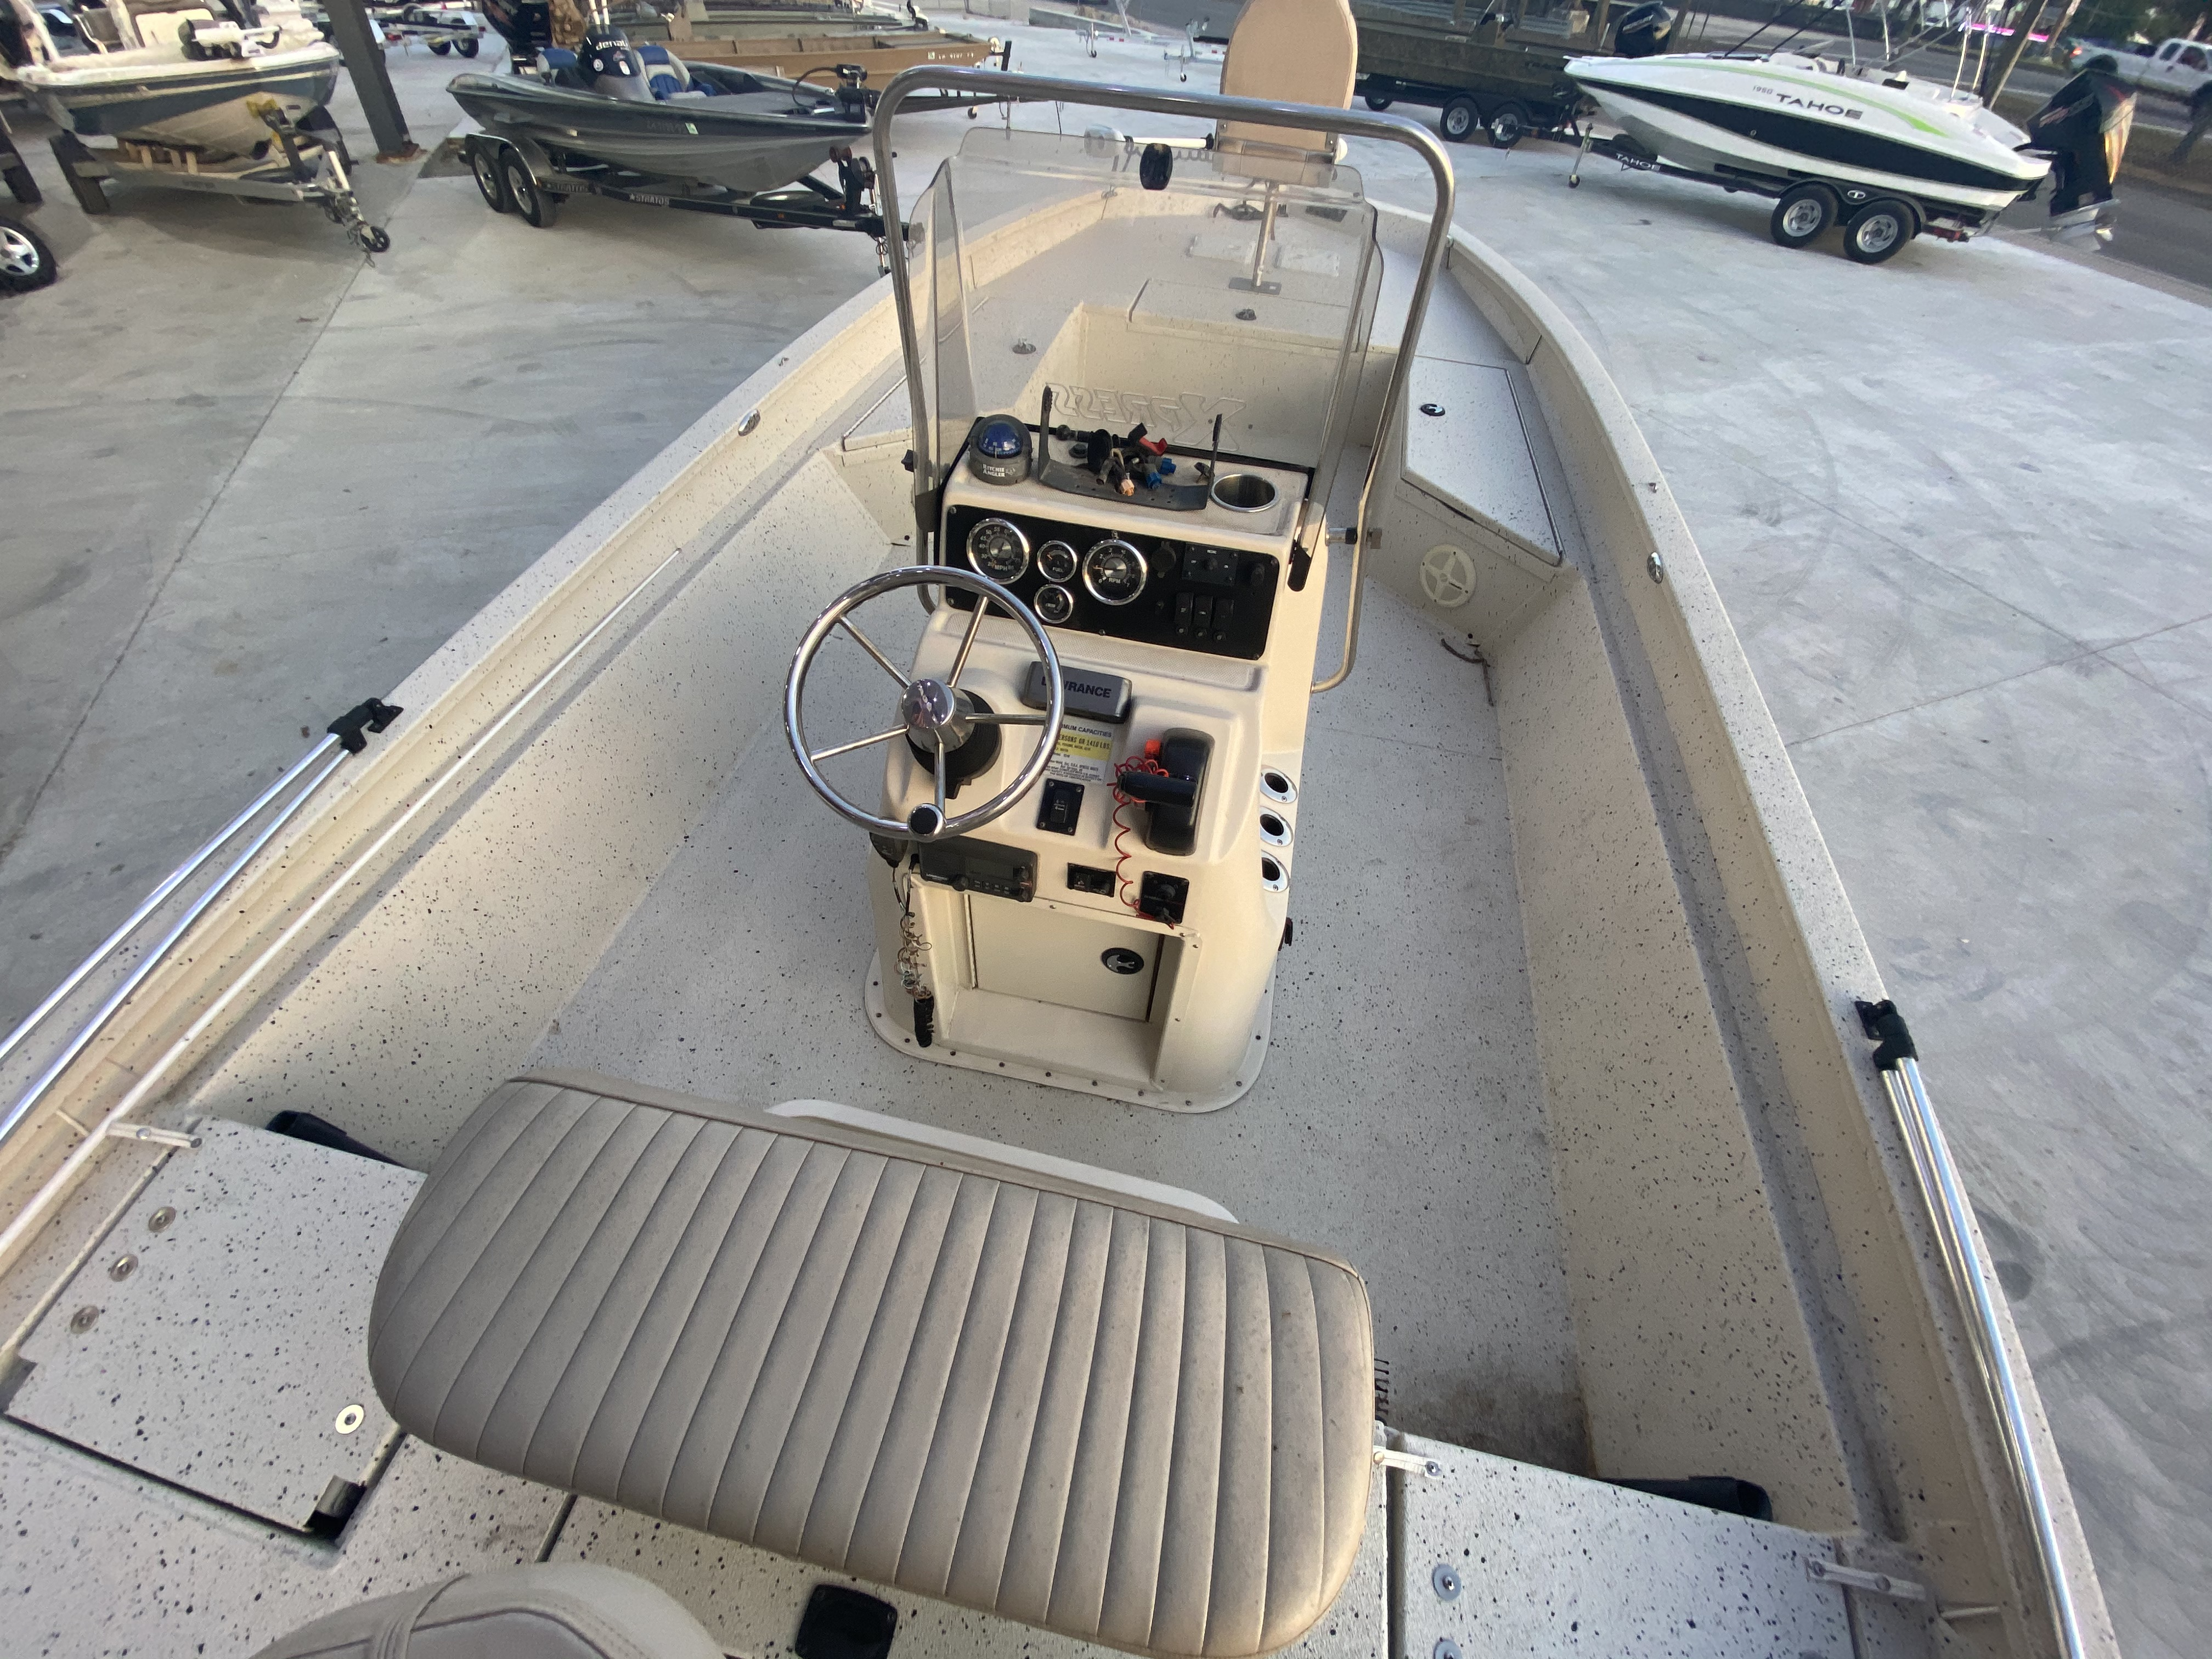 2012 Xpress boat for sale, model of the boat is H24B & Image # 17 of 17